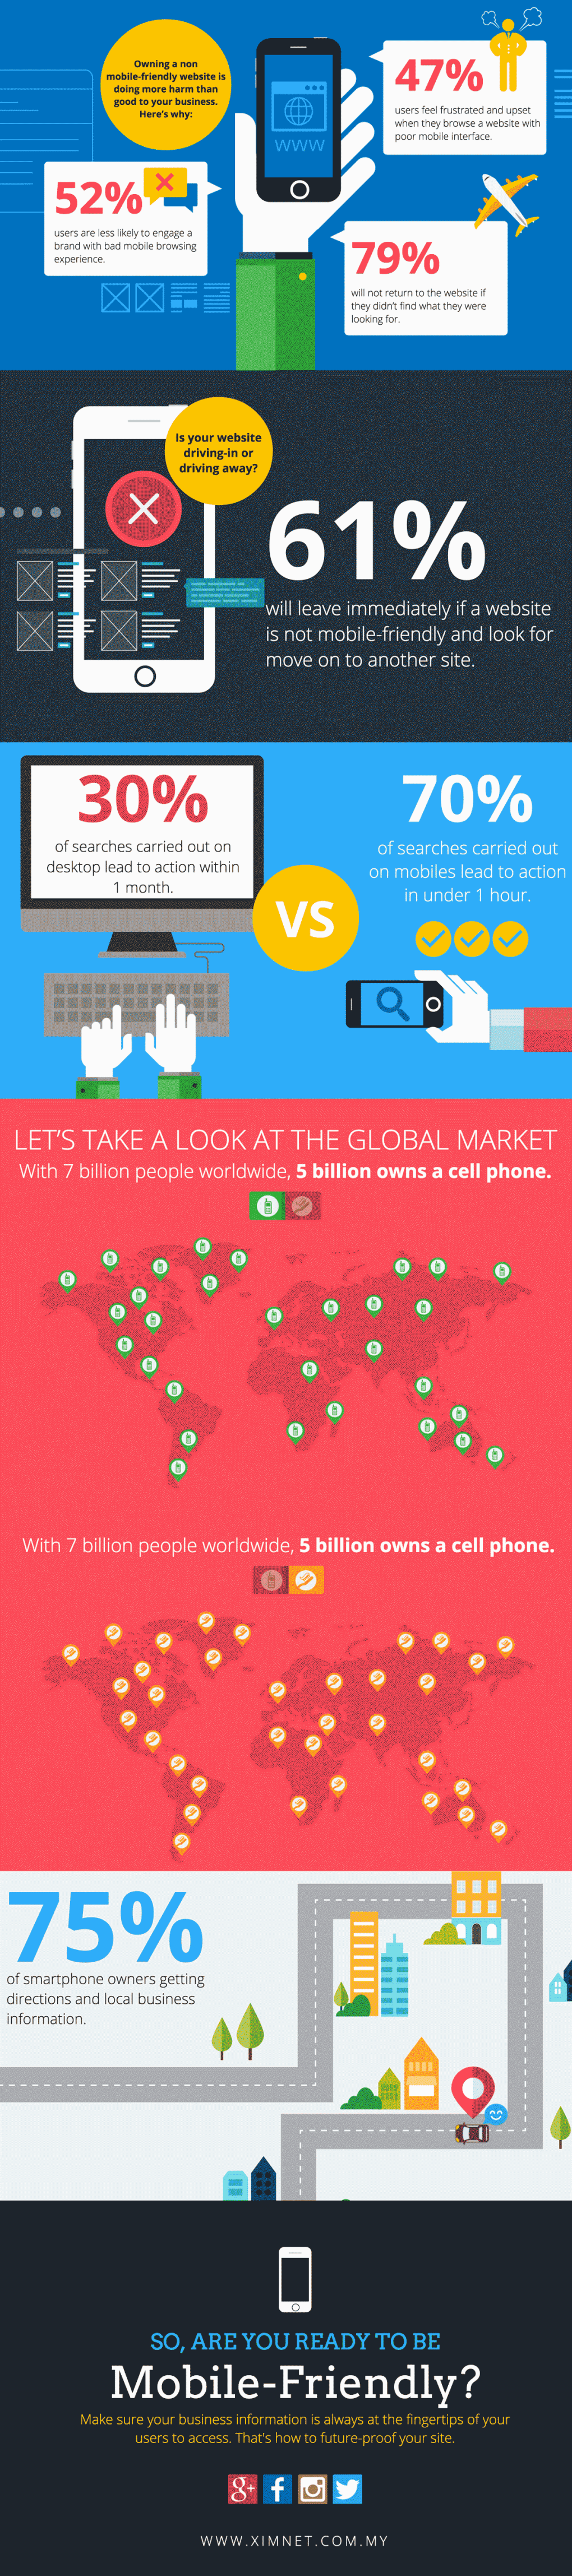 Mobile-ready-infographic